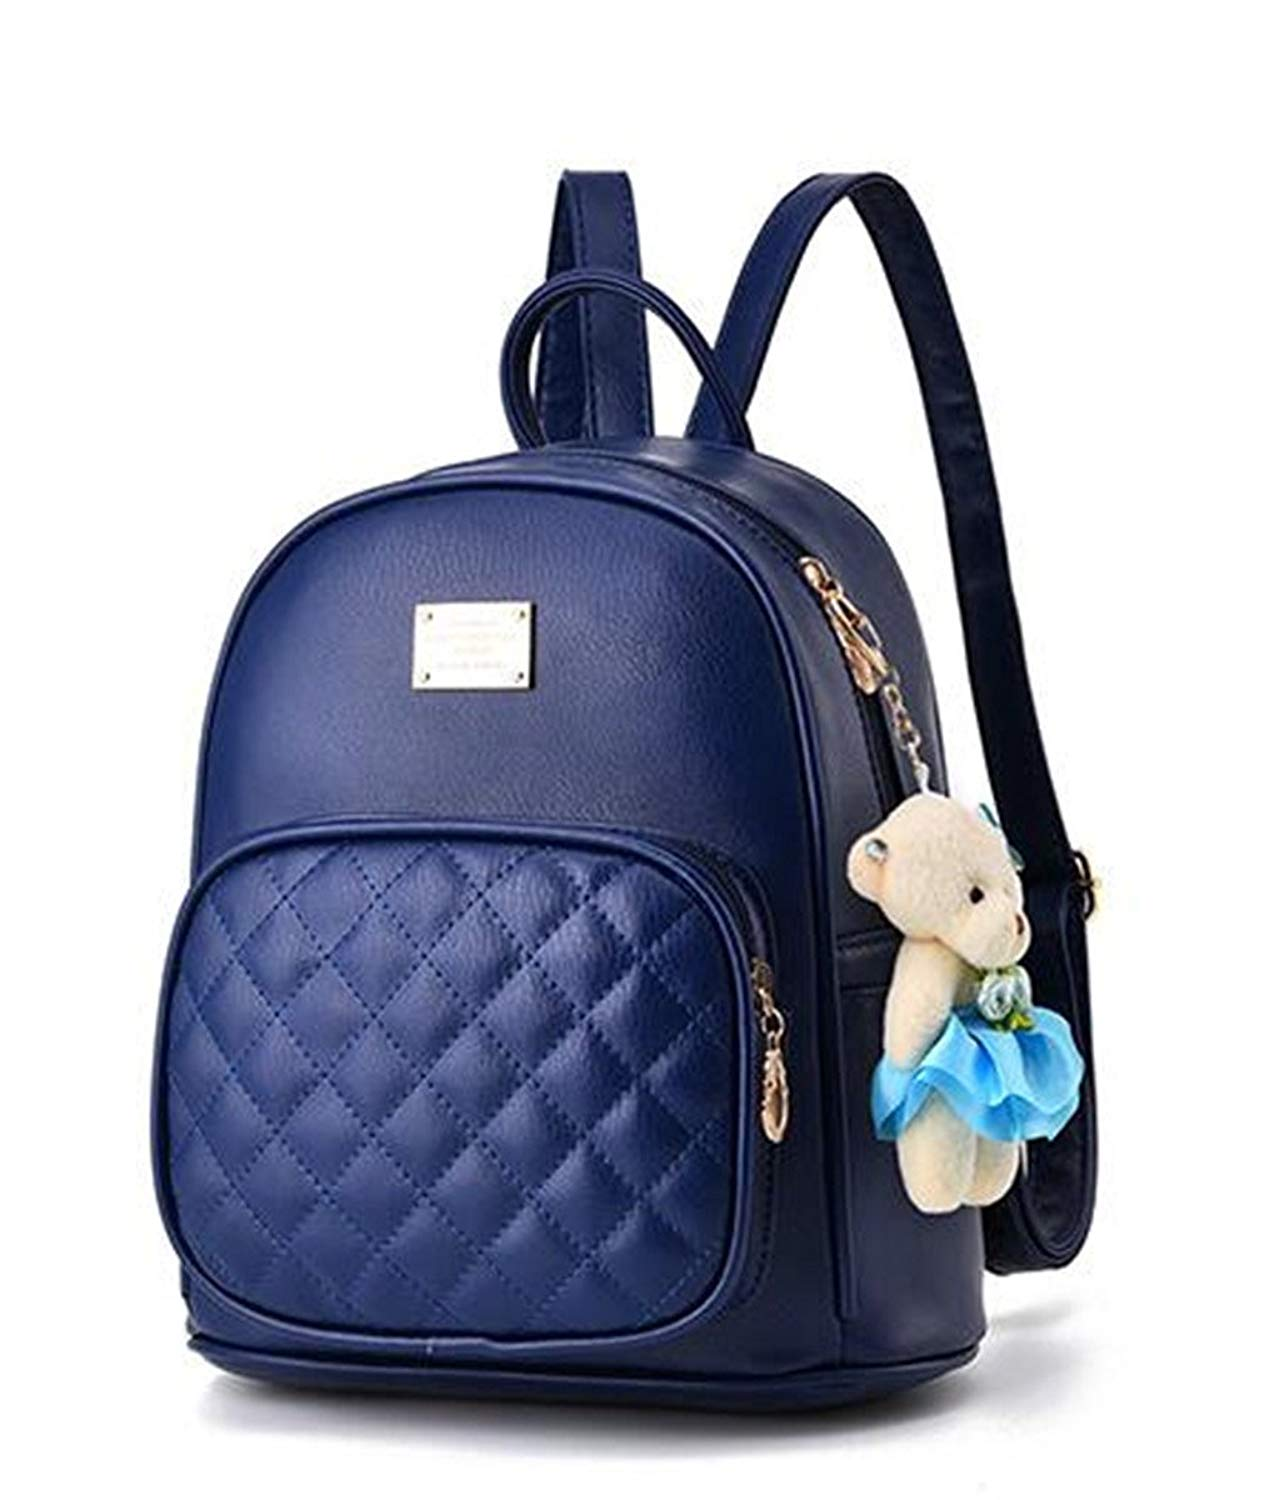 054bb8992 Get Quotations · Mogor Women PU Leather Backpack Purse Satchel School Bags  Knapsack for College